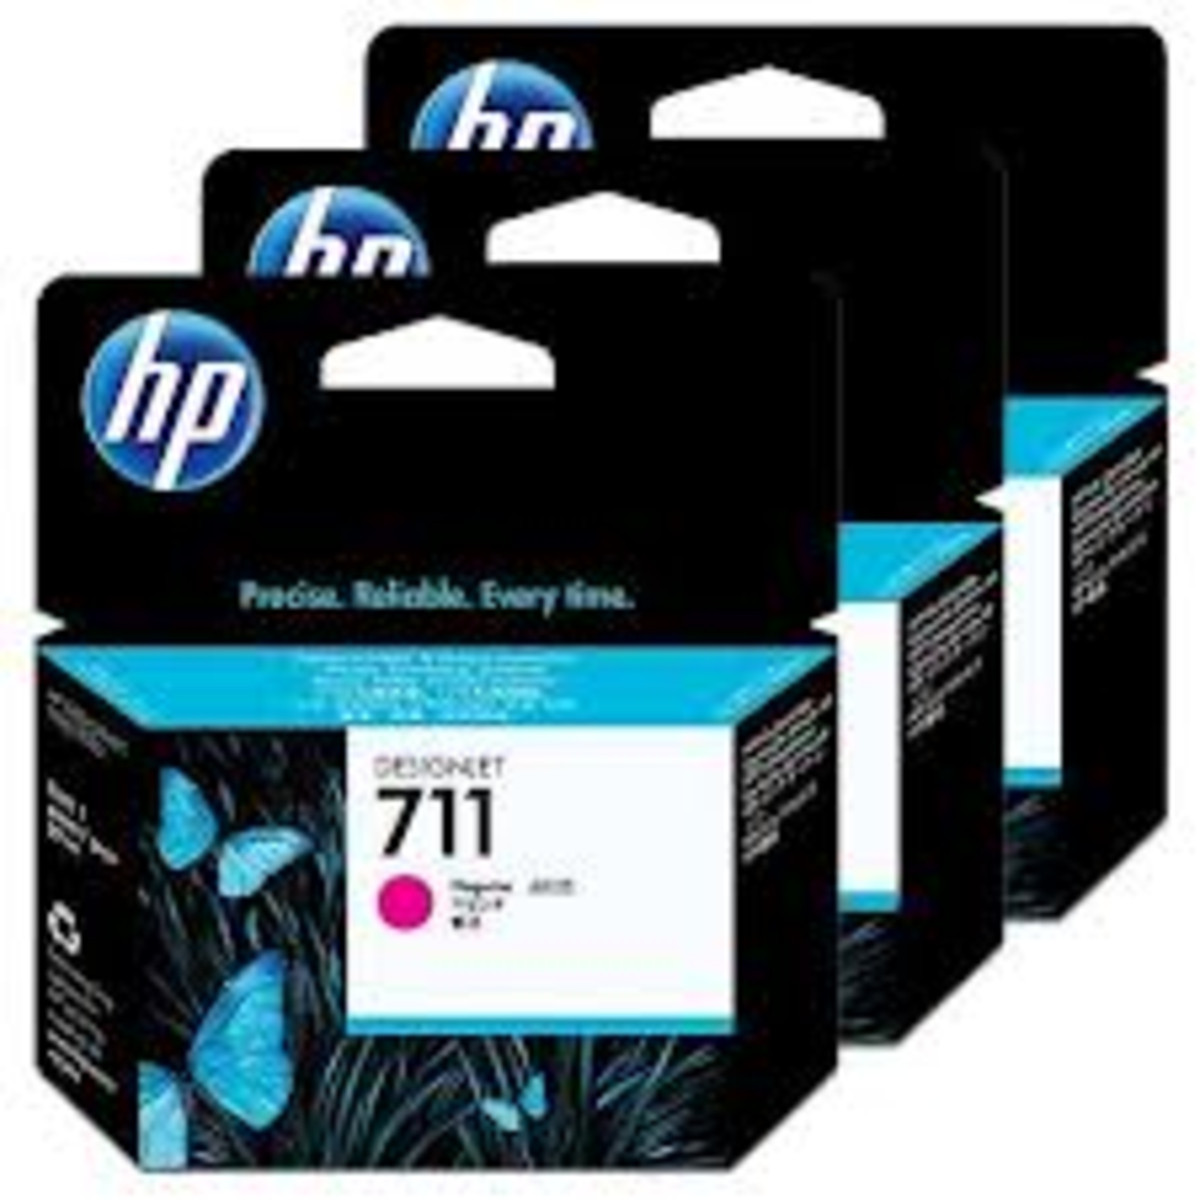 HP 711 (CZ135A) Magenta Ink Cartridges - 3 Pack